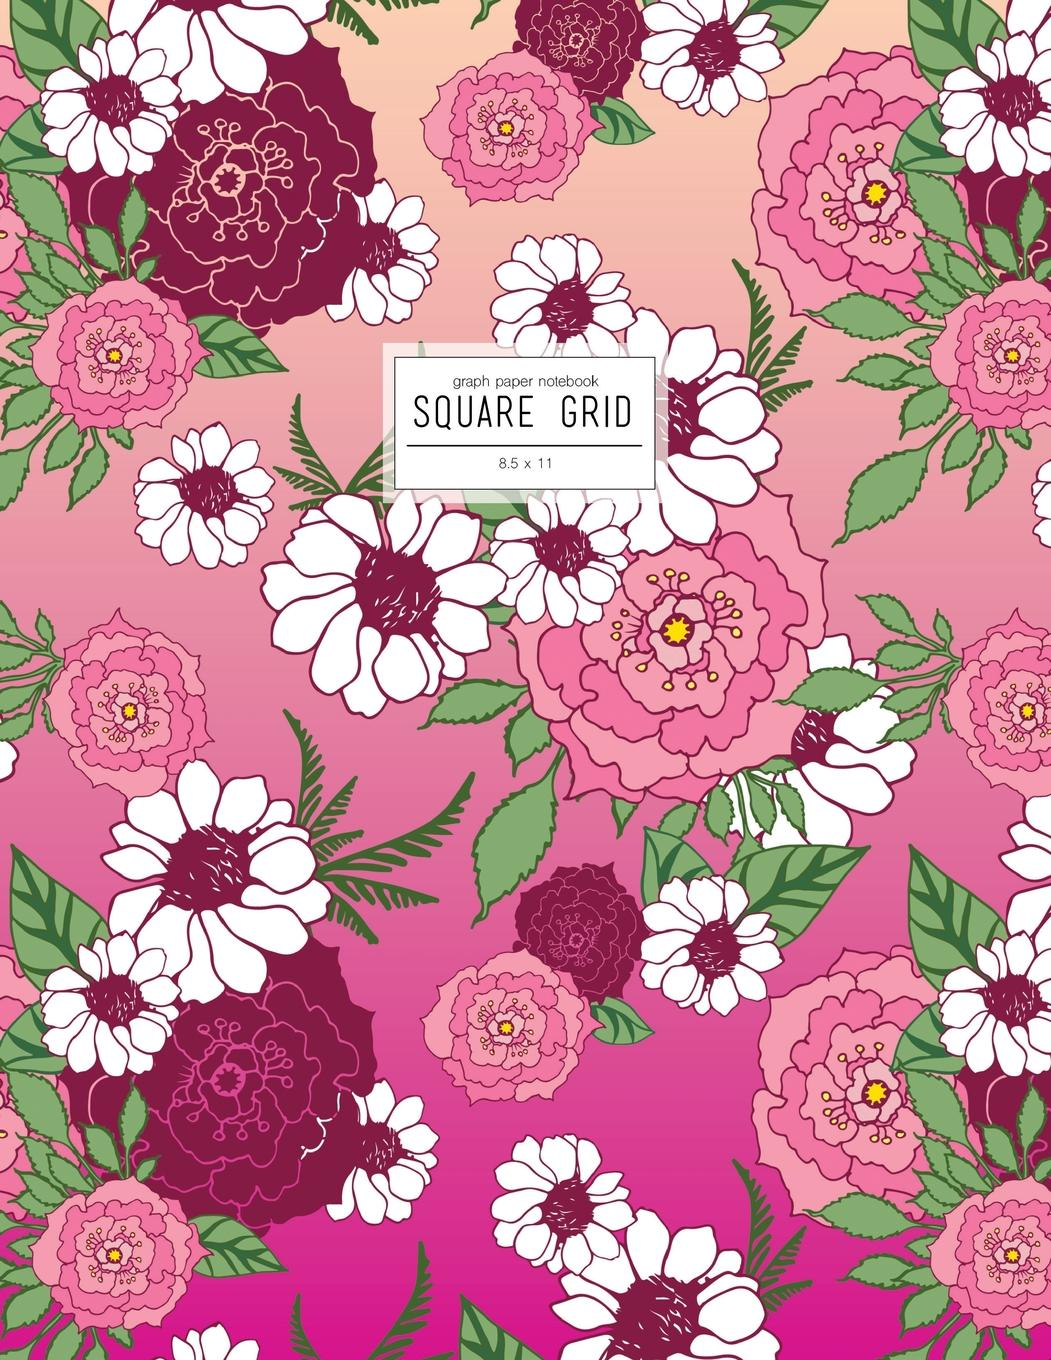 square grid graph paper notebook 8 5 x 11  pink floral journal to write in  paperback